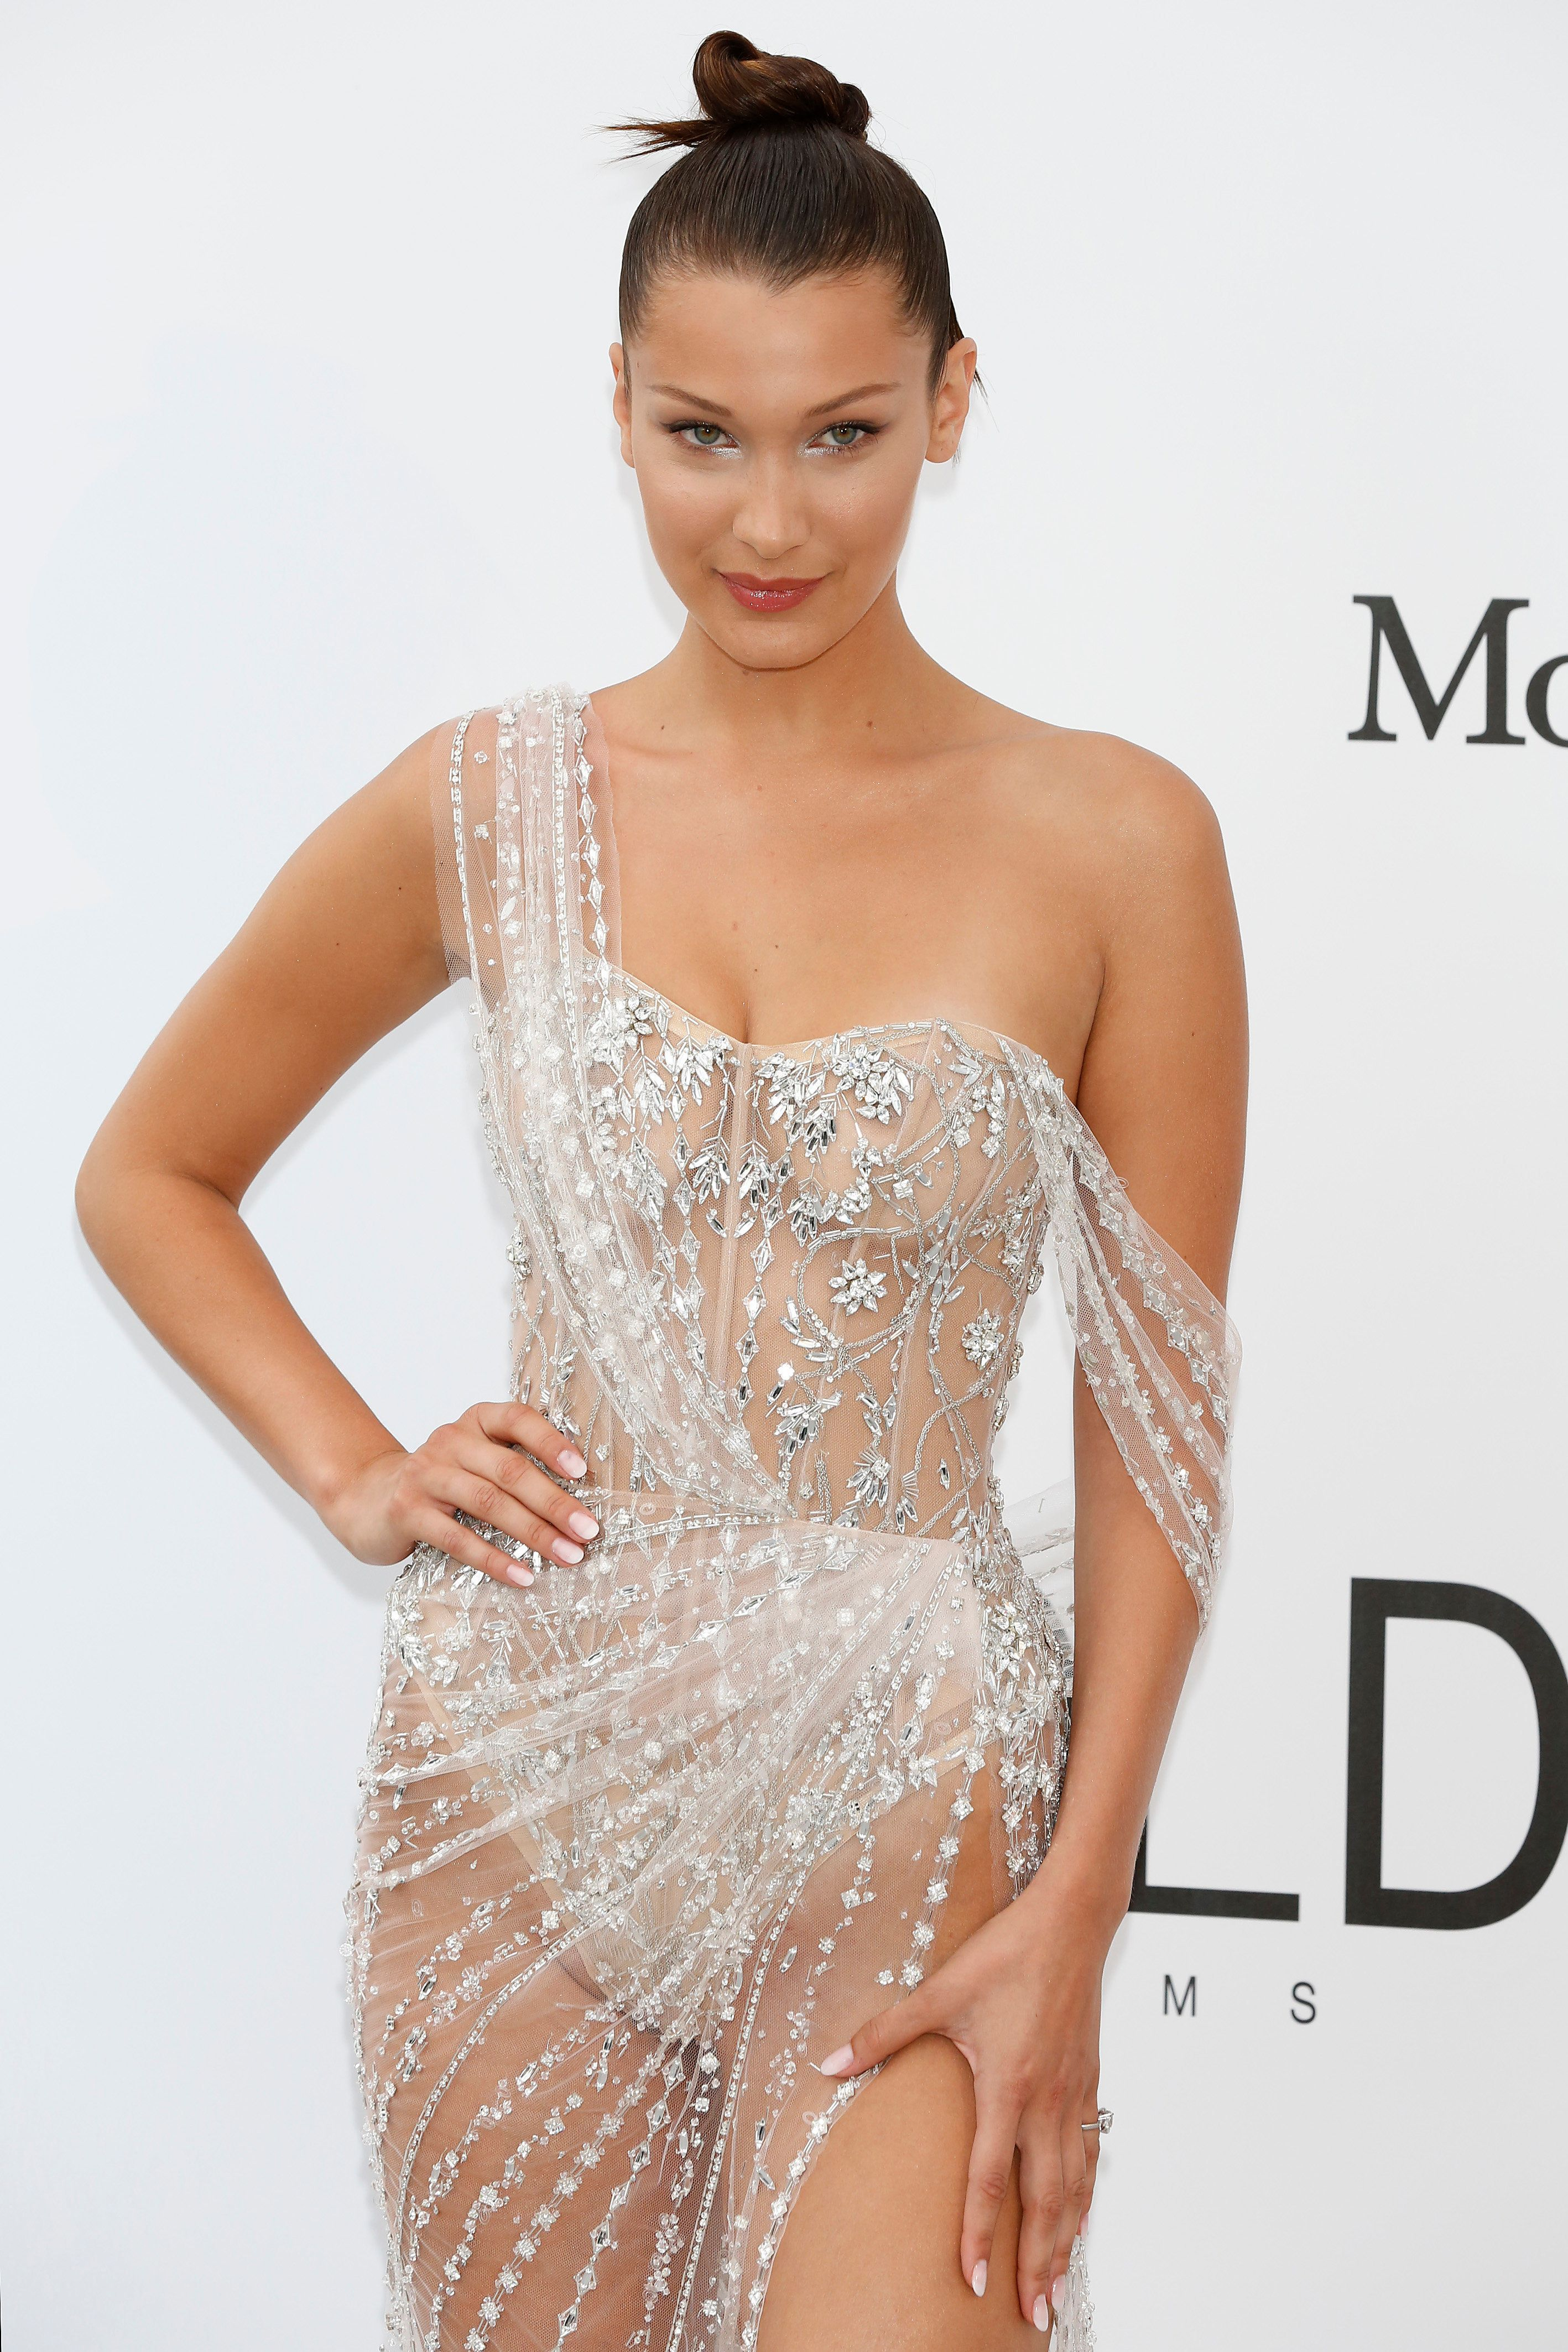 Bella Hadid at the amfAR Gala Cannes 2017 at Hotel du Cap-Eden-Roc on 25 May 25 2017 in Cap d'Antibes,